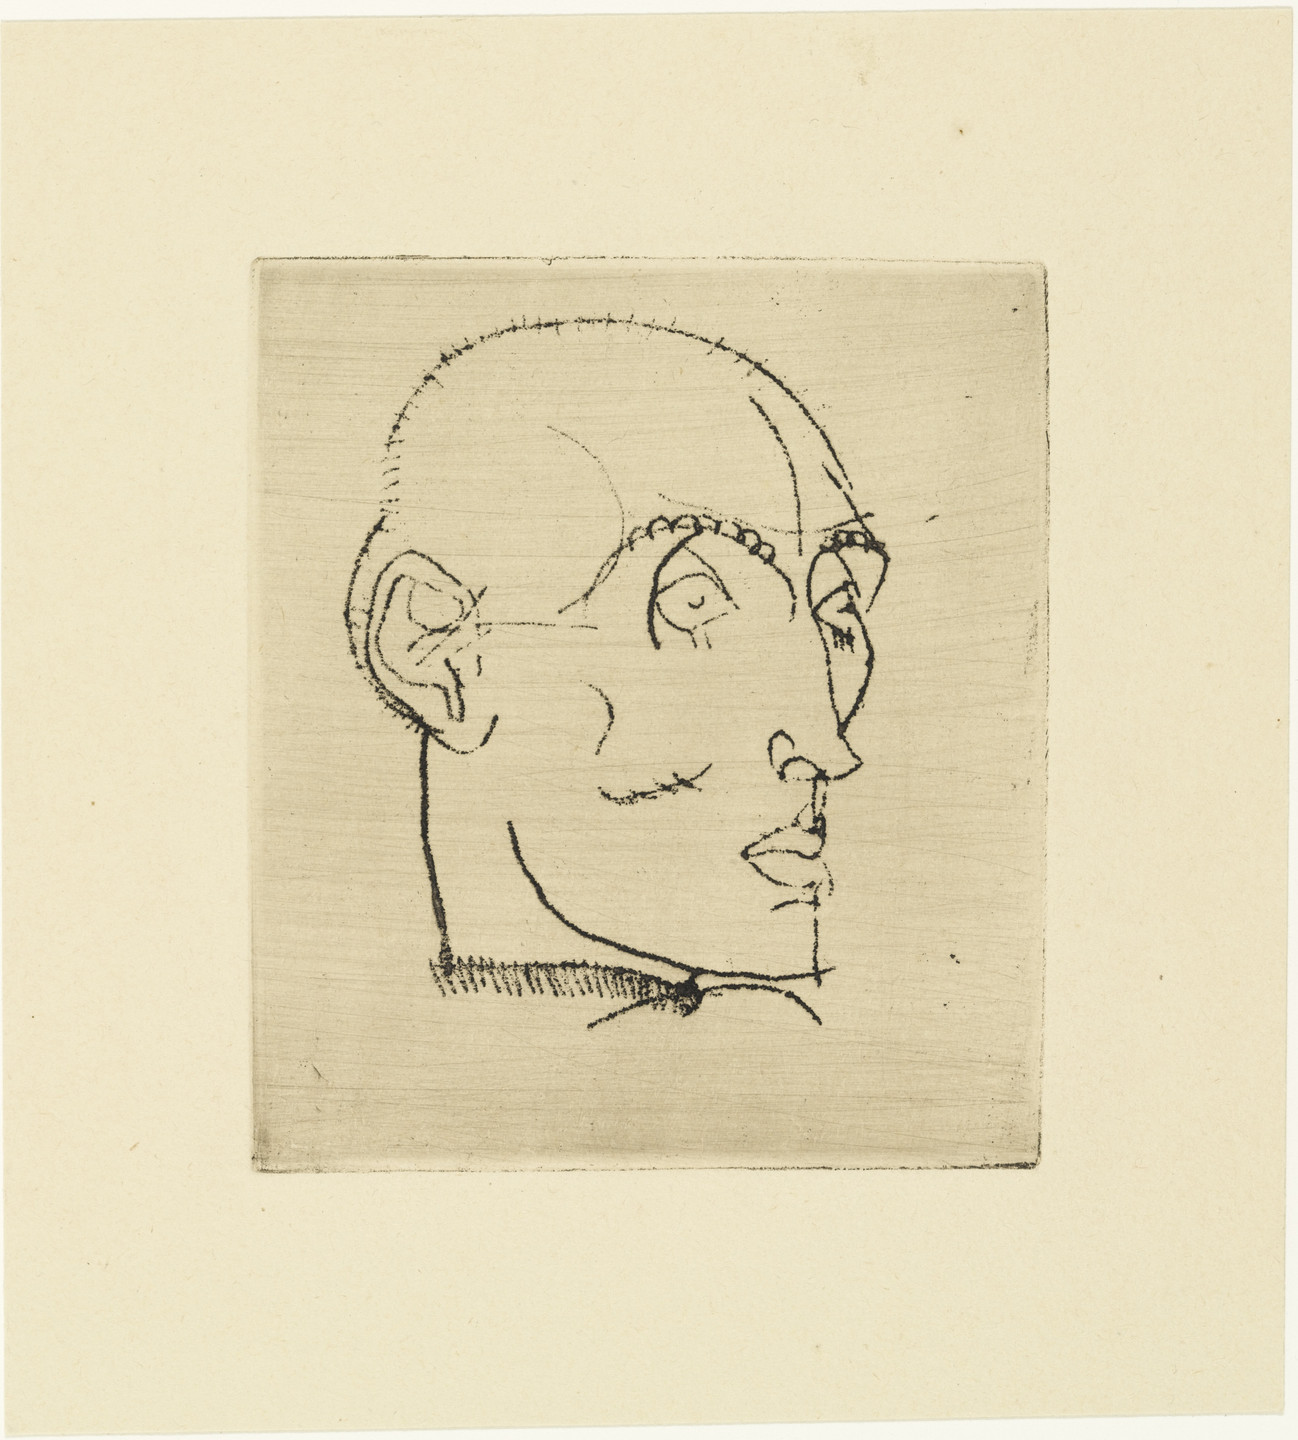 Egon Schiele. Portrait of a Man (Männliches Bildnis) from The Graphic Work of Egon Schiele (Das Graphische Werk von Egon Schiele). (1914, published 1922)